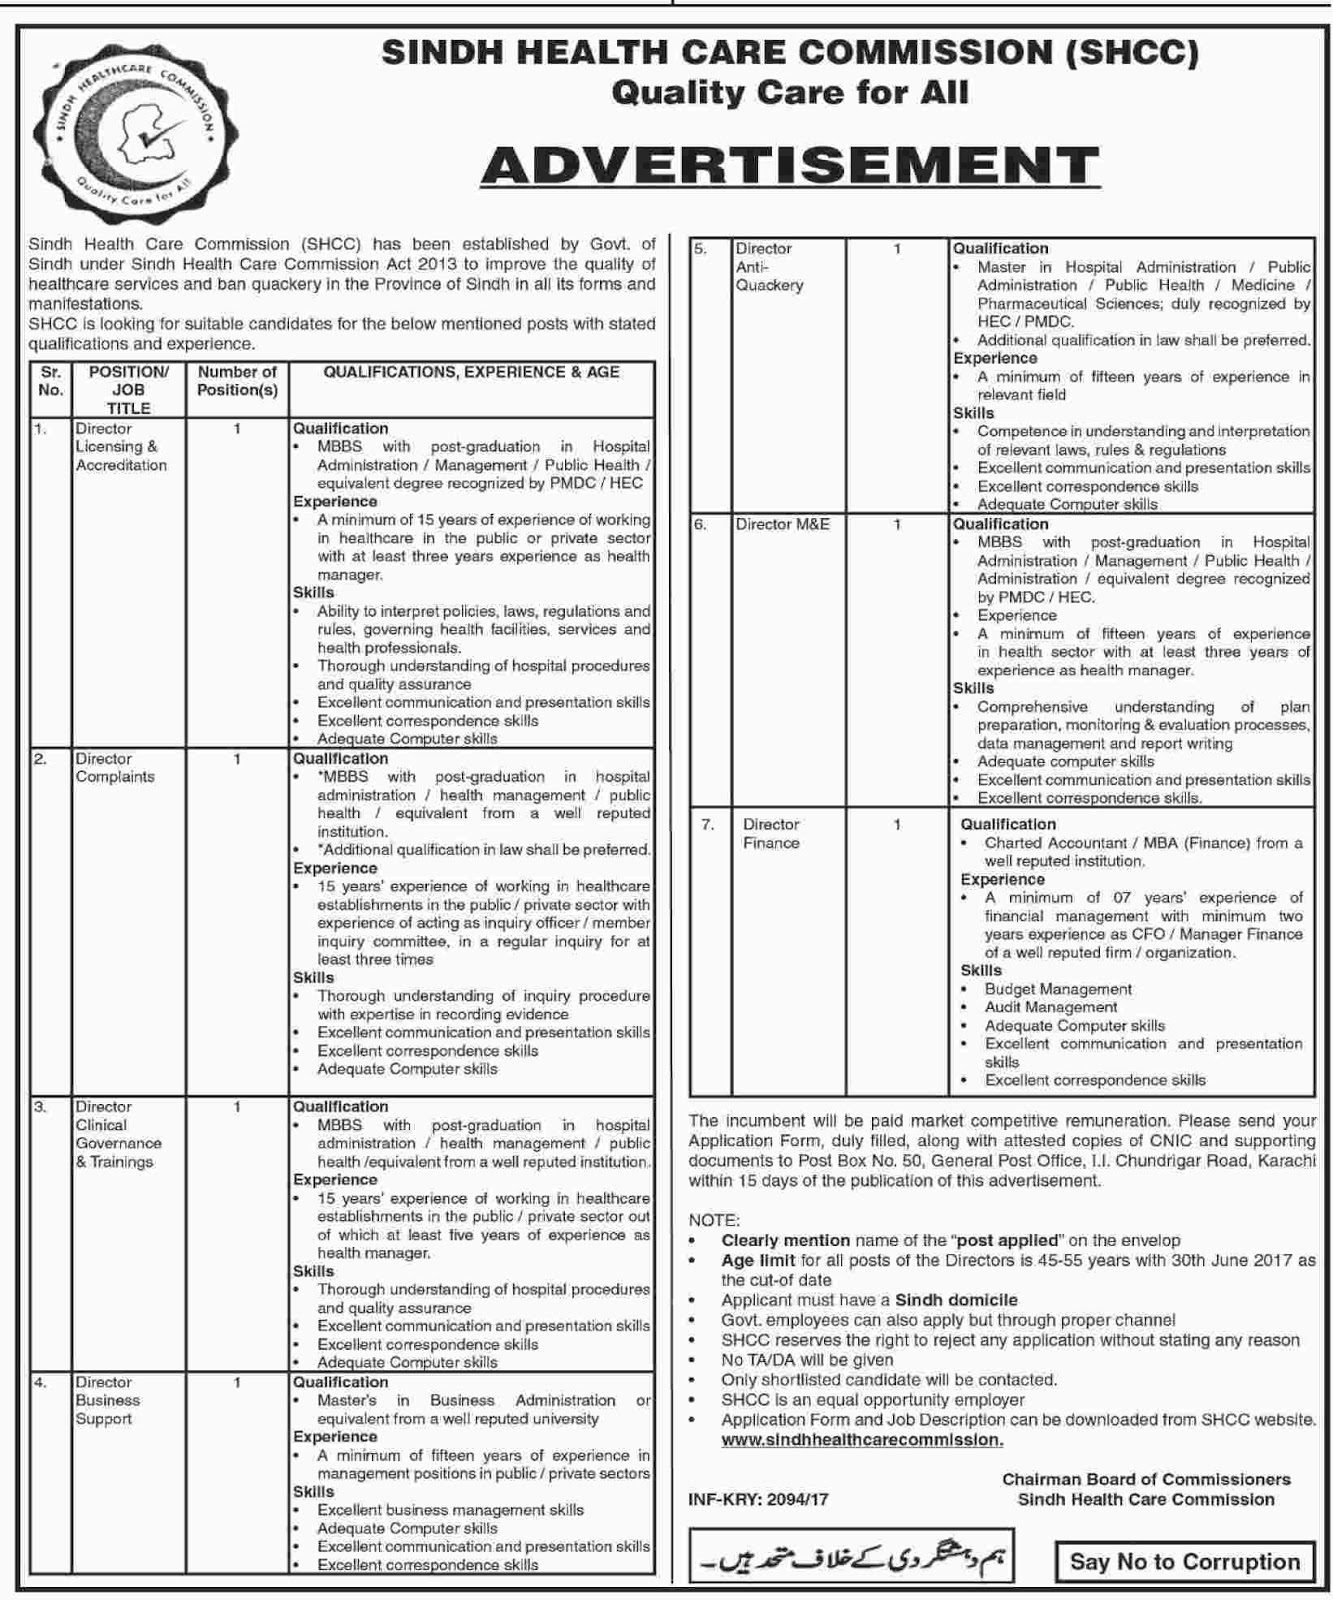 Jobs in Sindh Healthcare Commission Quality Care 20 april 2017